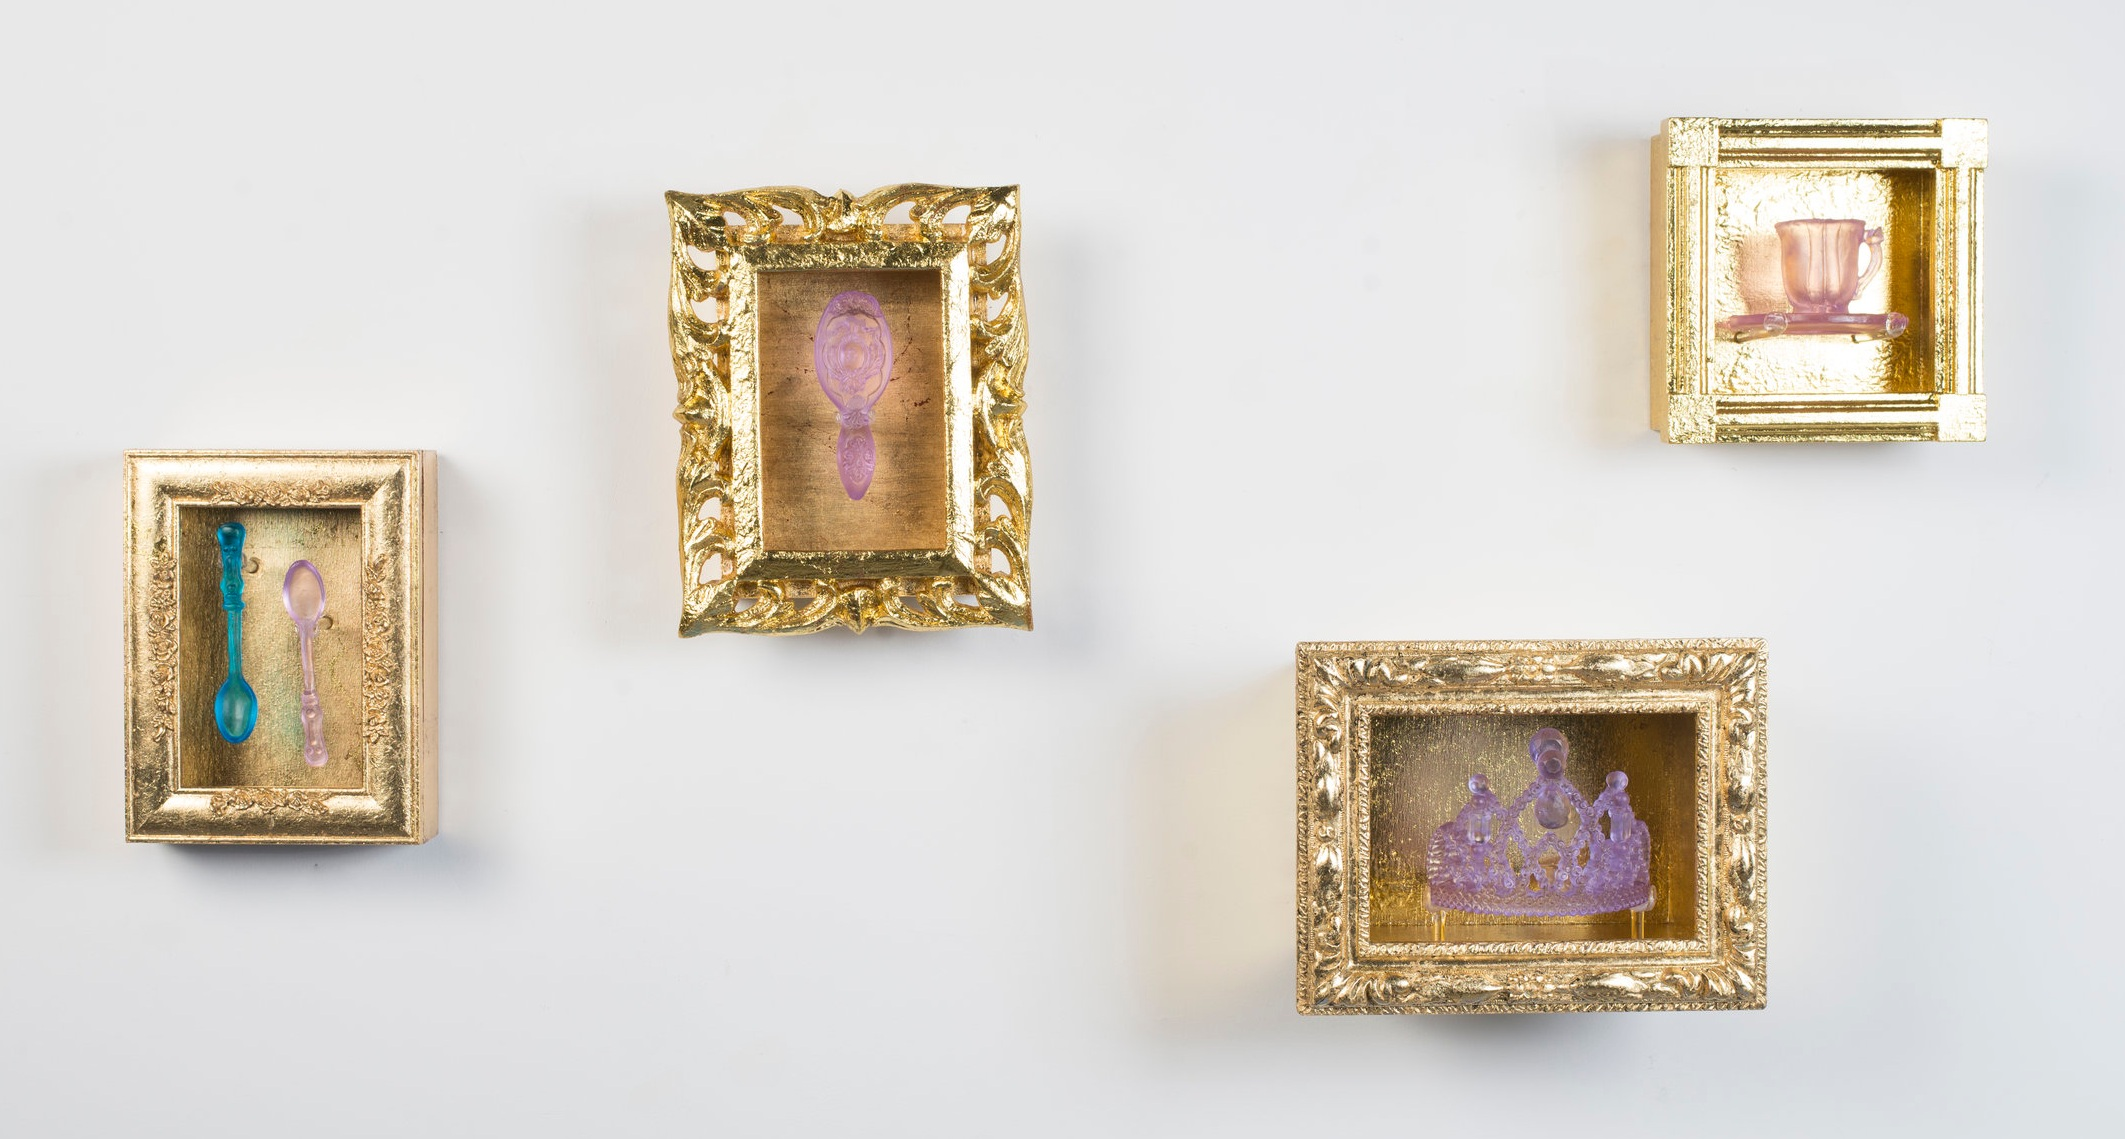 Gilded Memories Series, Casted glass, gilded wooden frames, 2019